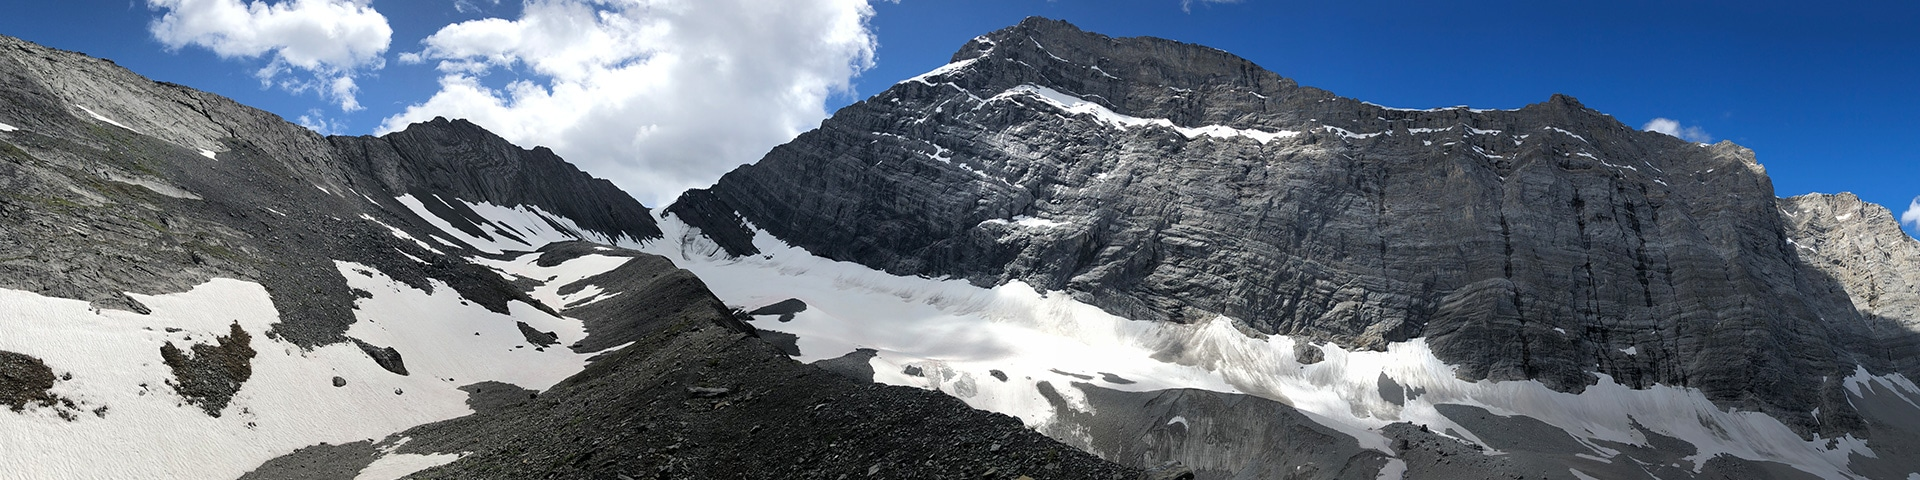 Panorama from the Old Goat Glacier hike from Smith-Dorrien Trail in Kananaskis near Canmore